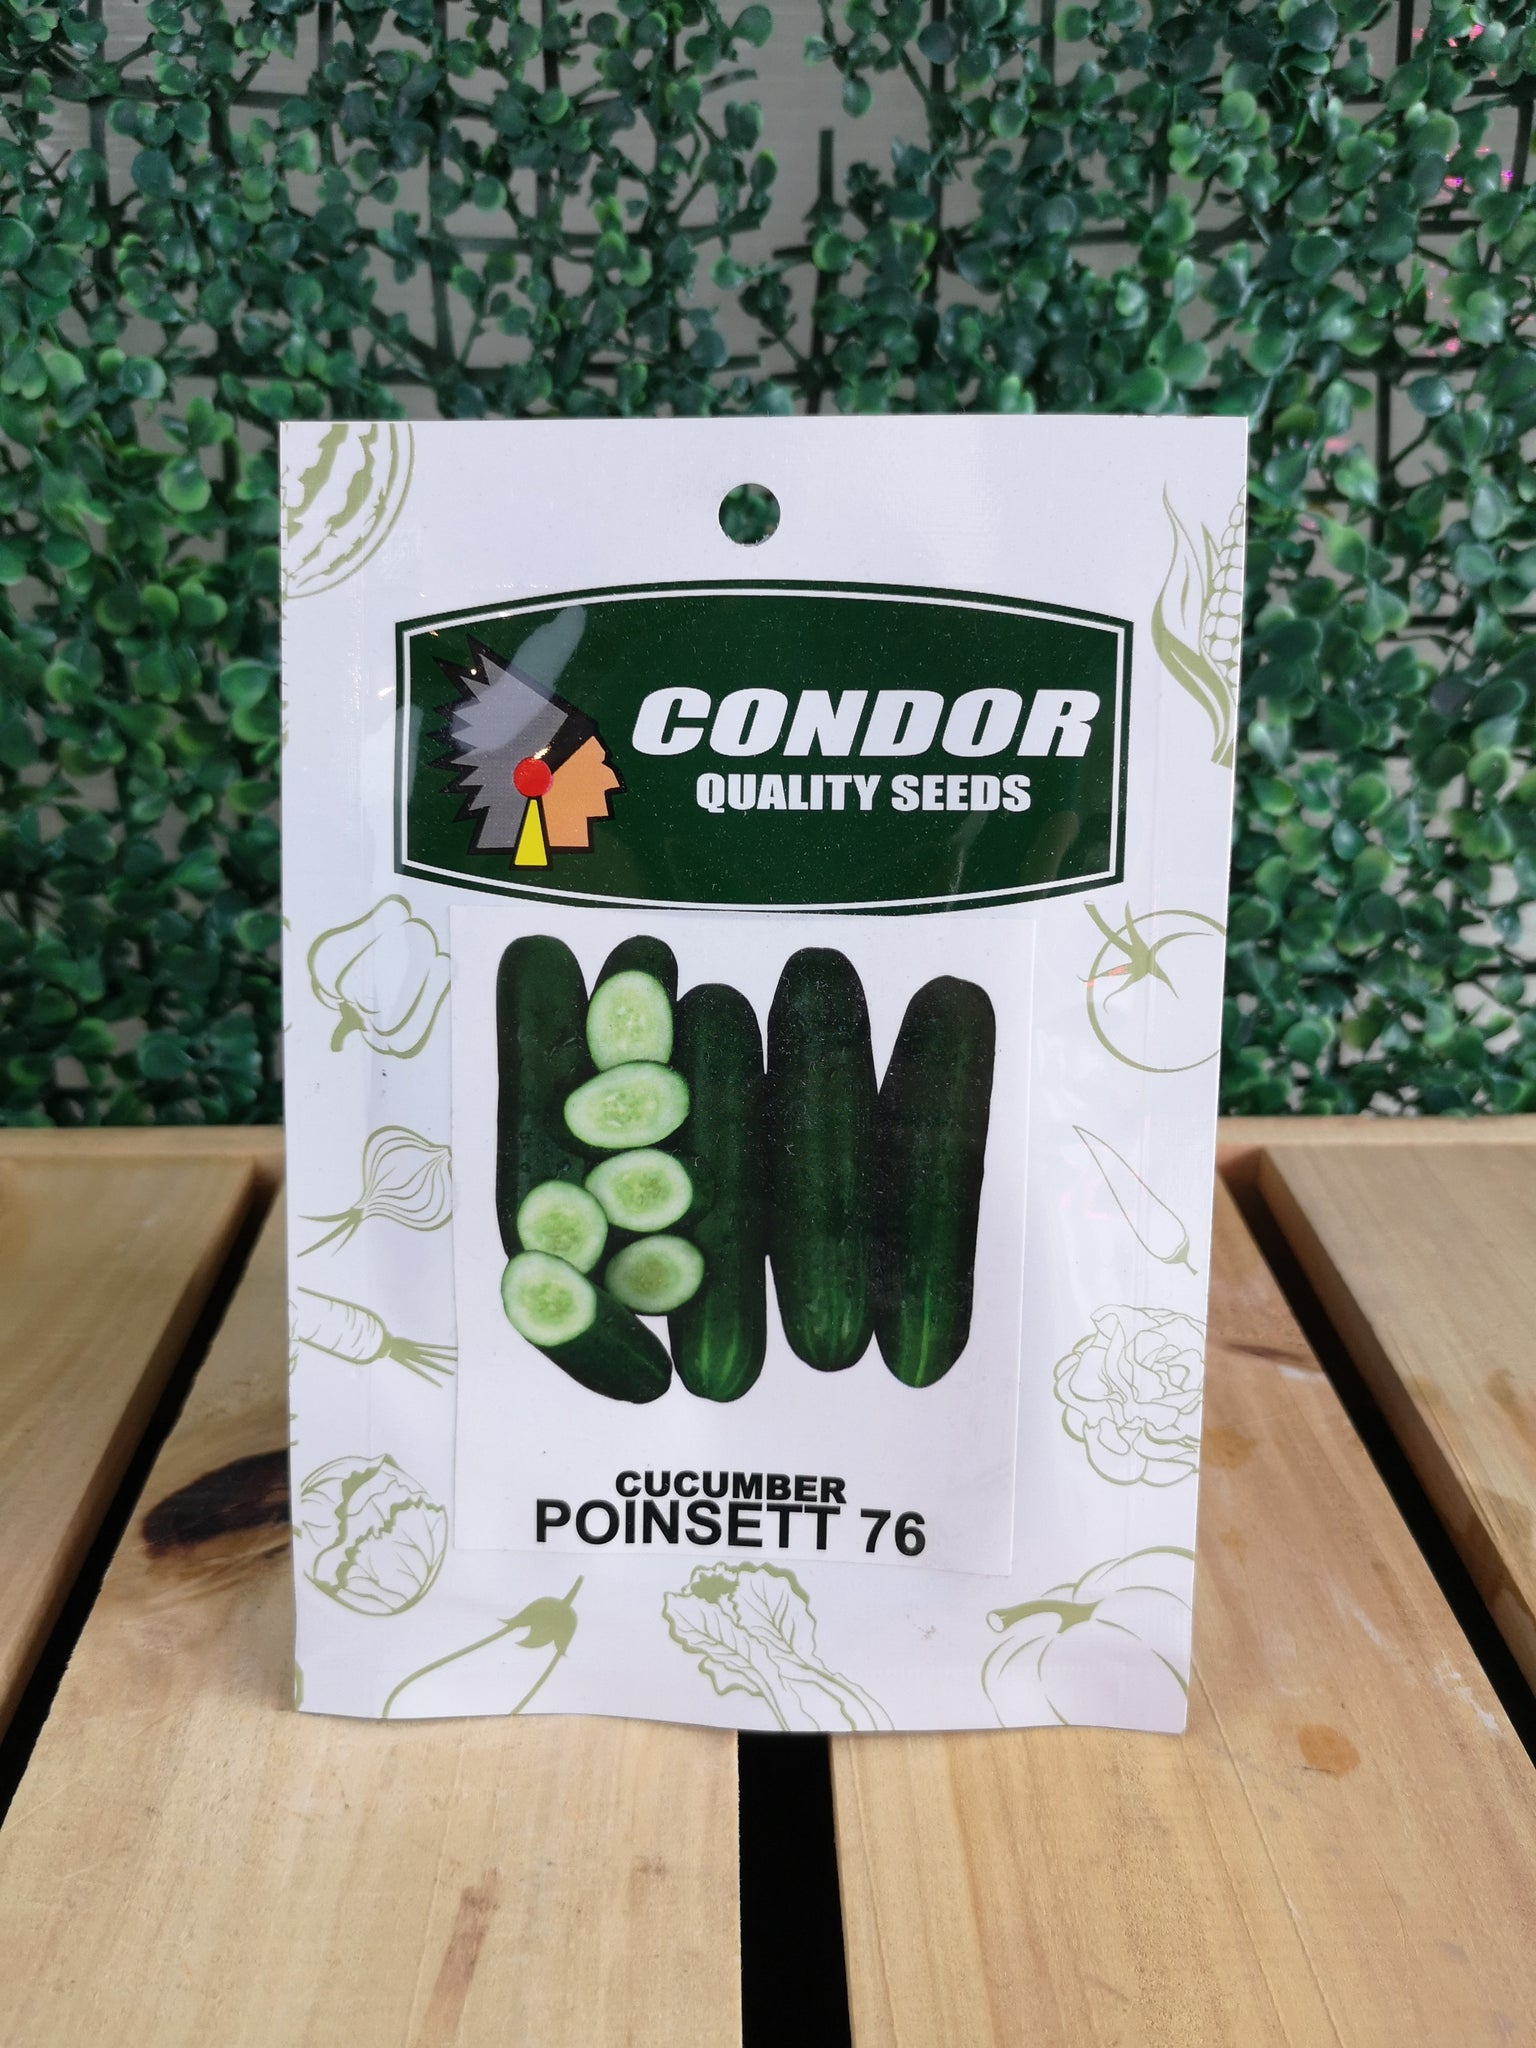 Condor Quality Seeds Cucumber Poinsett 76 3 grams